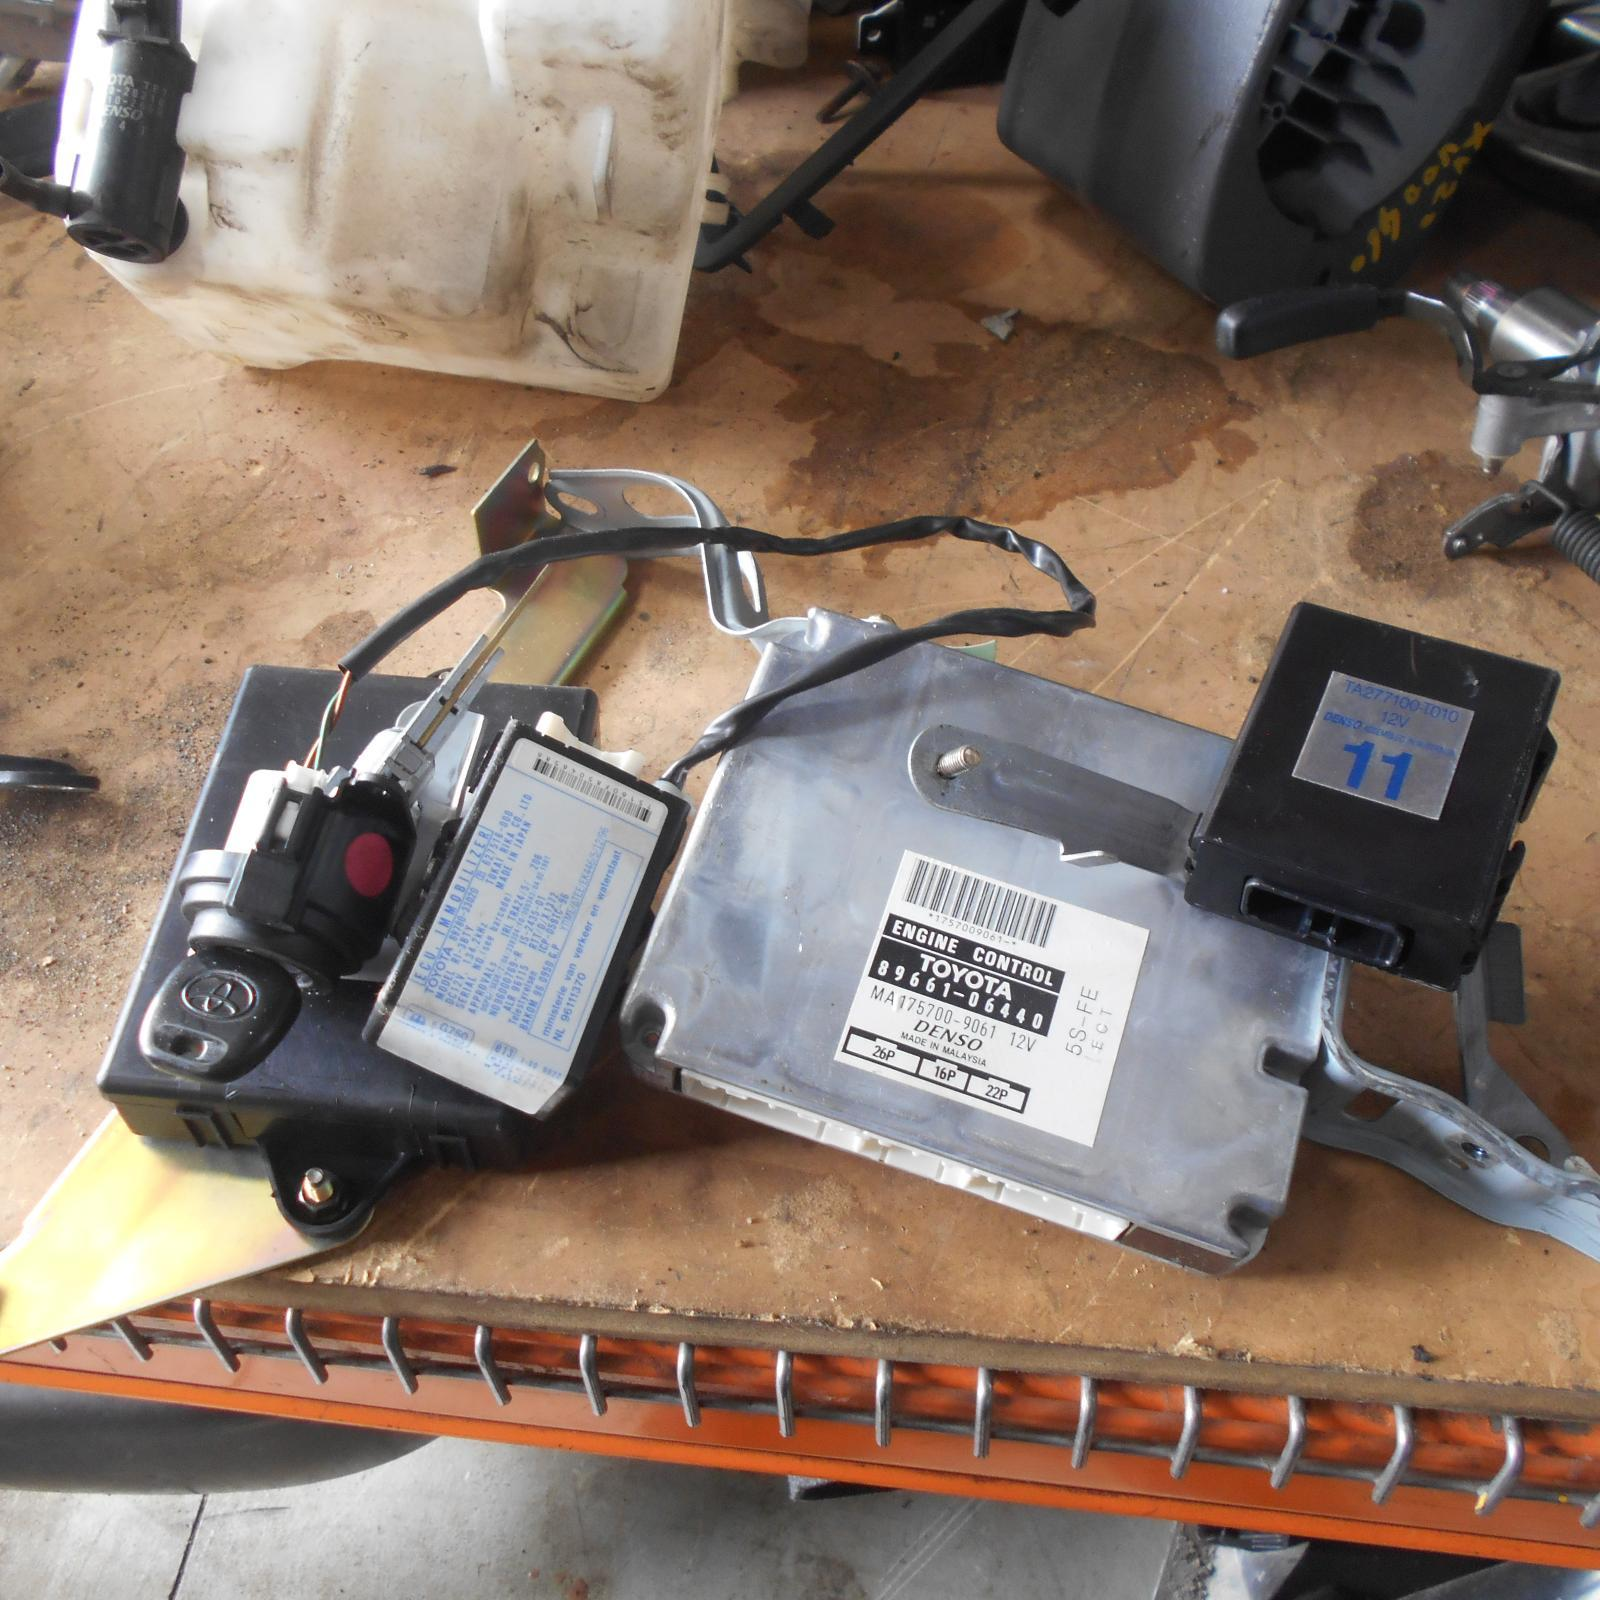 TOYOTA CAMRY, Ecu, ENGINE ECU, SK20, 2.2, 5S-FE, ECU ONLY, 08/97-08/02